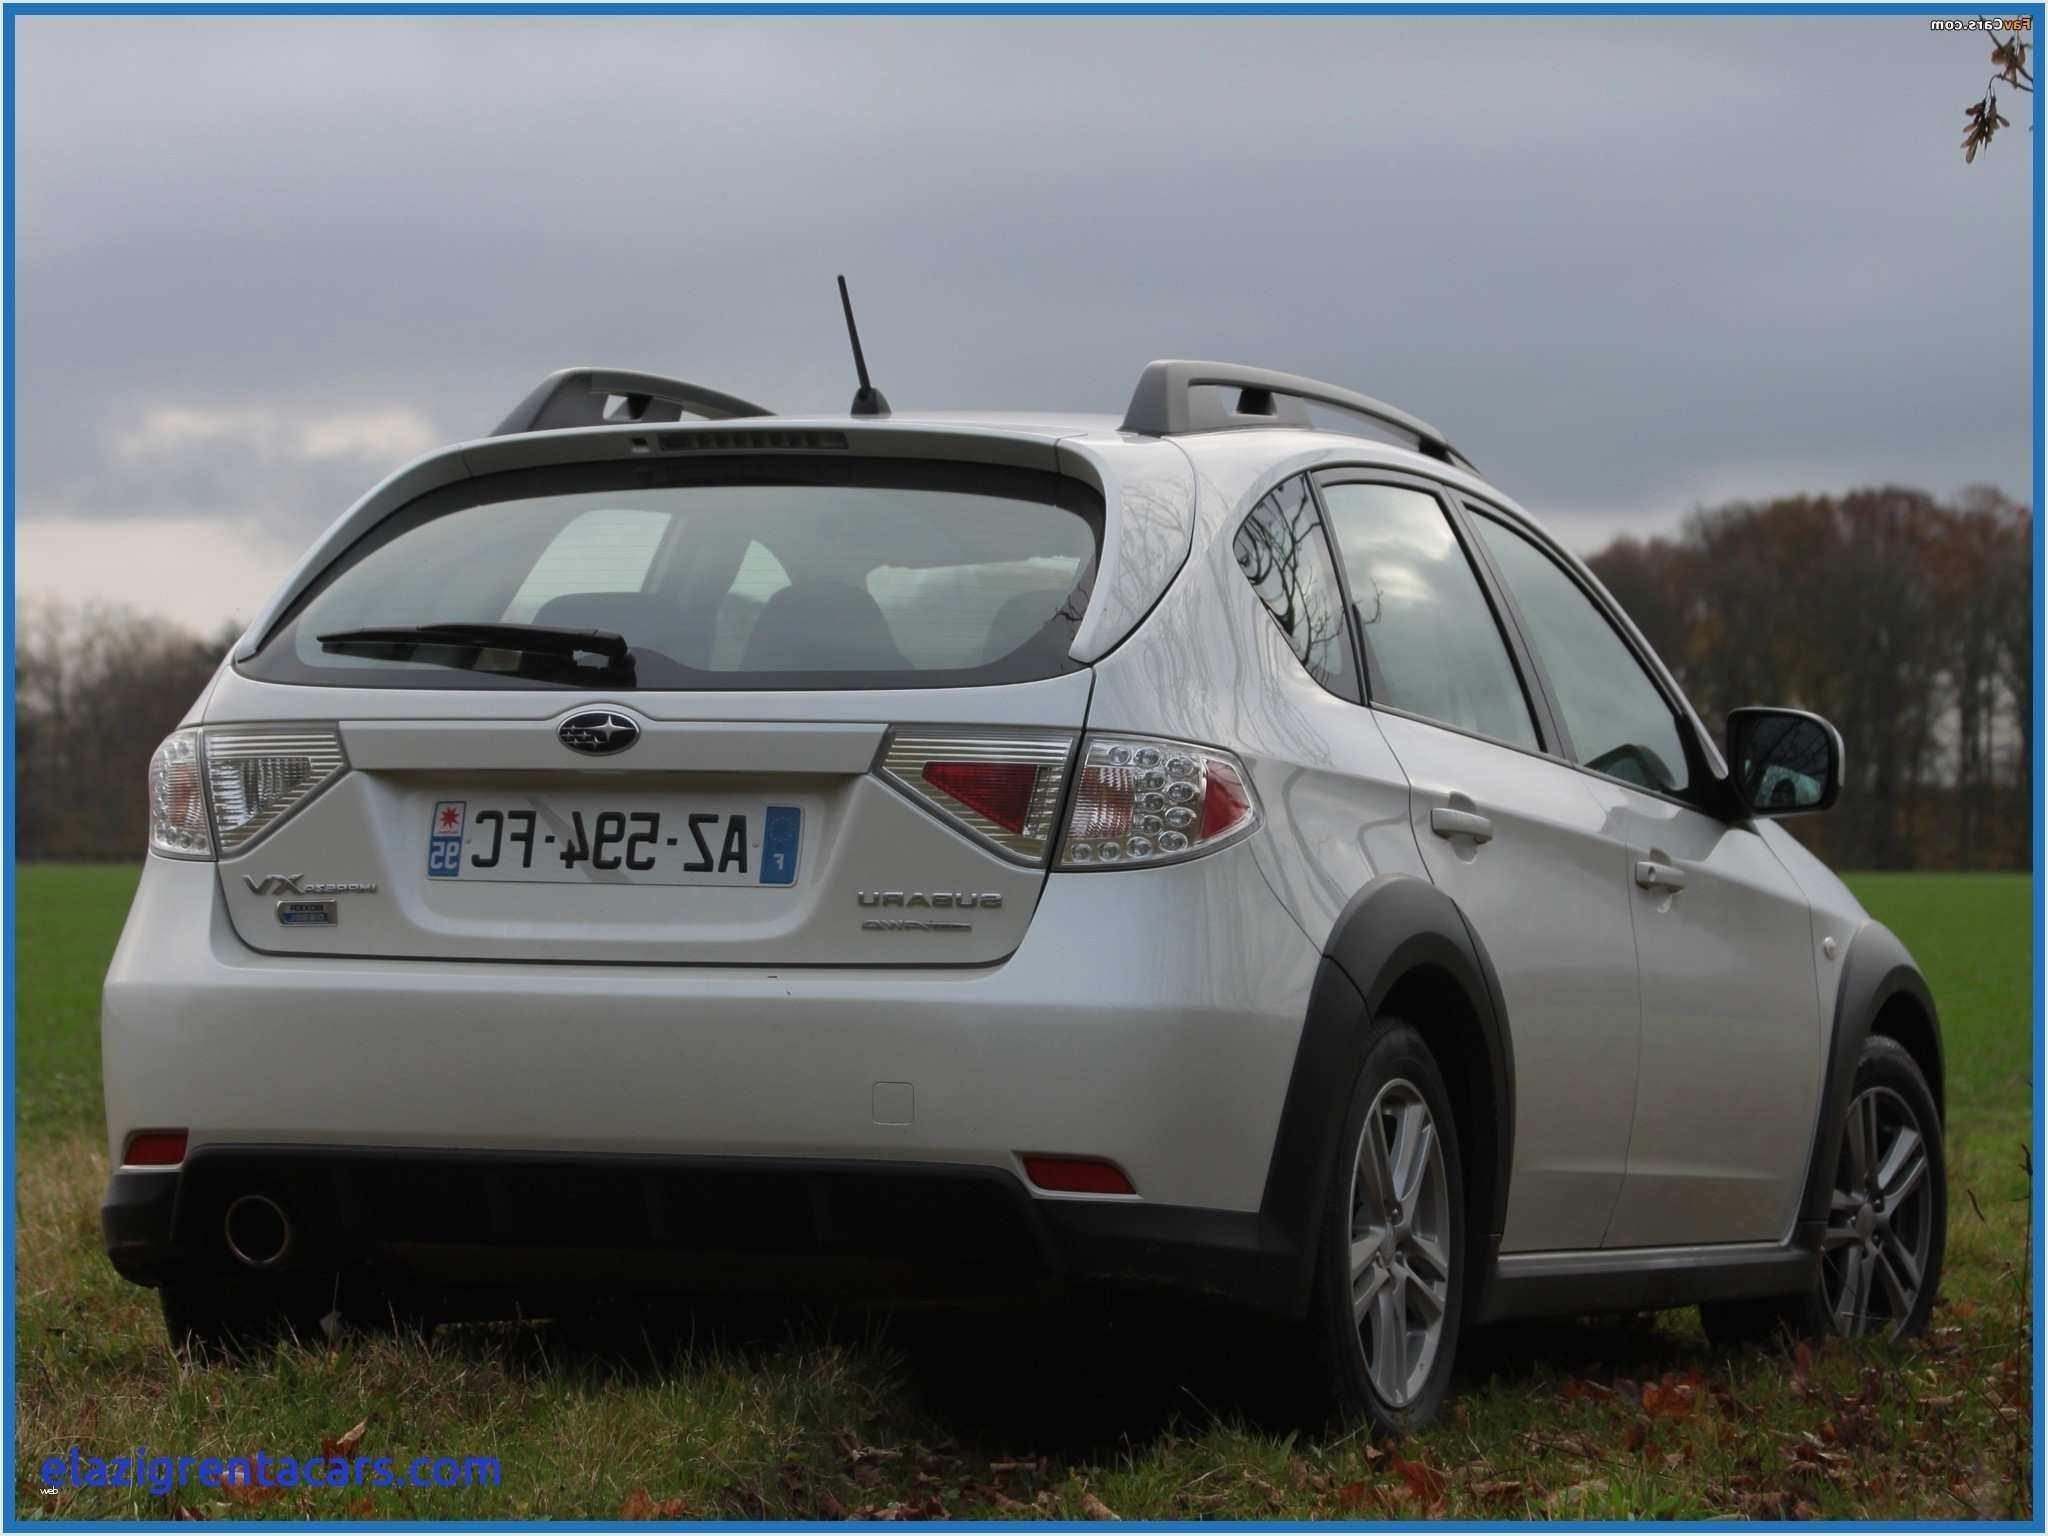 69 All New Subaru Hatchback 2019 Release Date And Specs Rumors by Subaru Hatchback 2019 Release Date And Specs